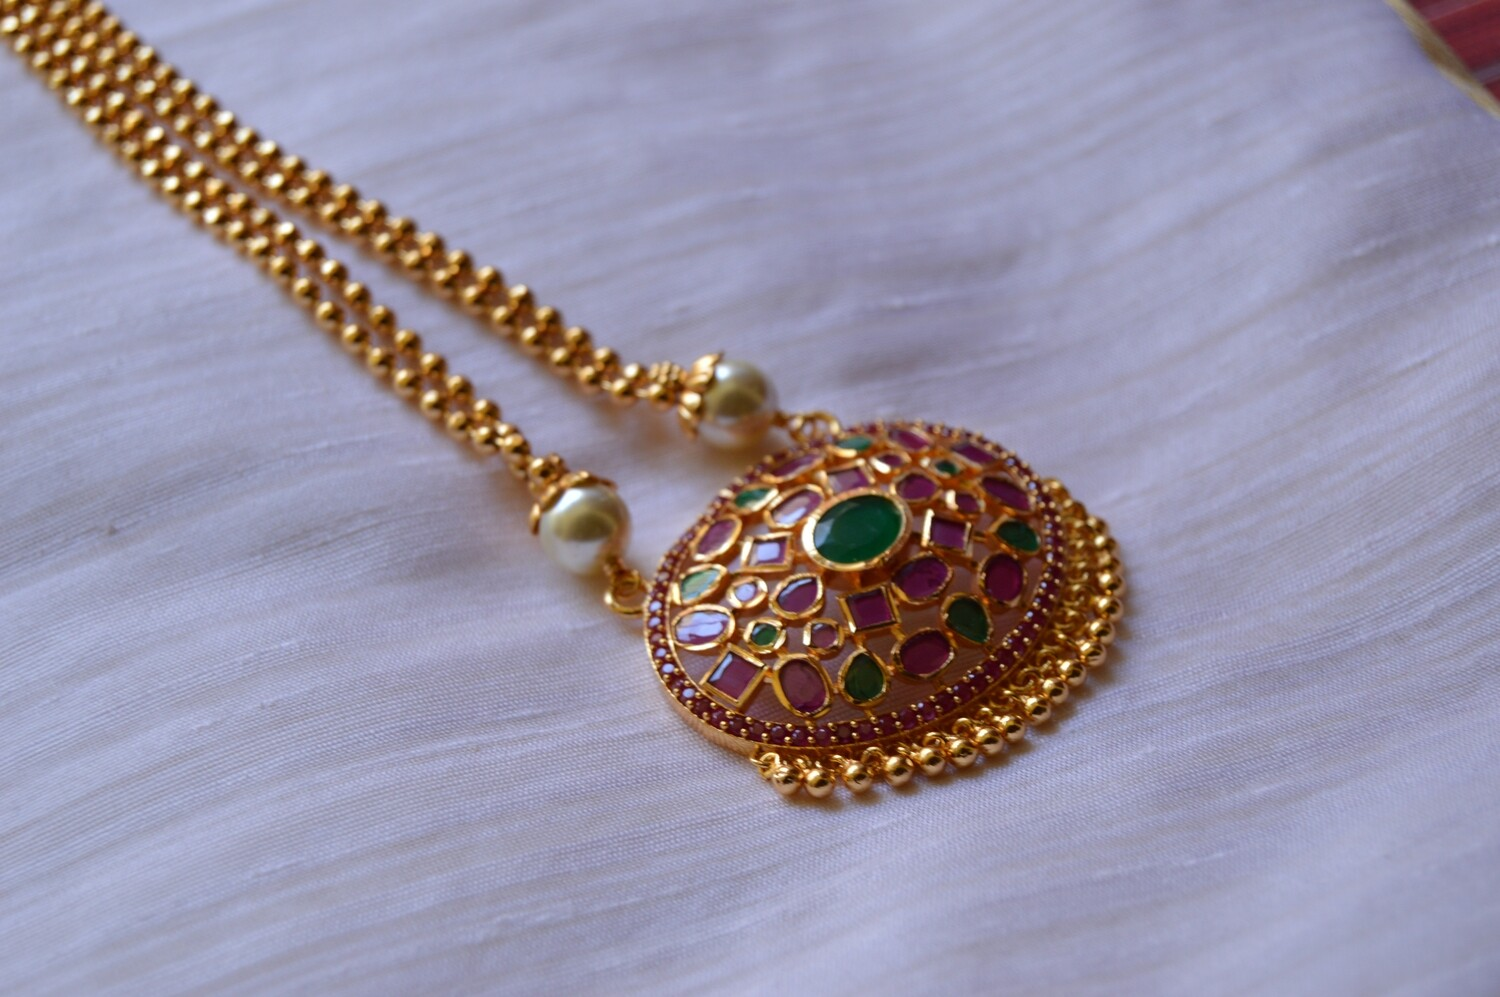 RED AND GREEN STONES OVAL PENDANT NECKLACE